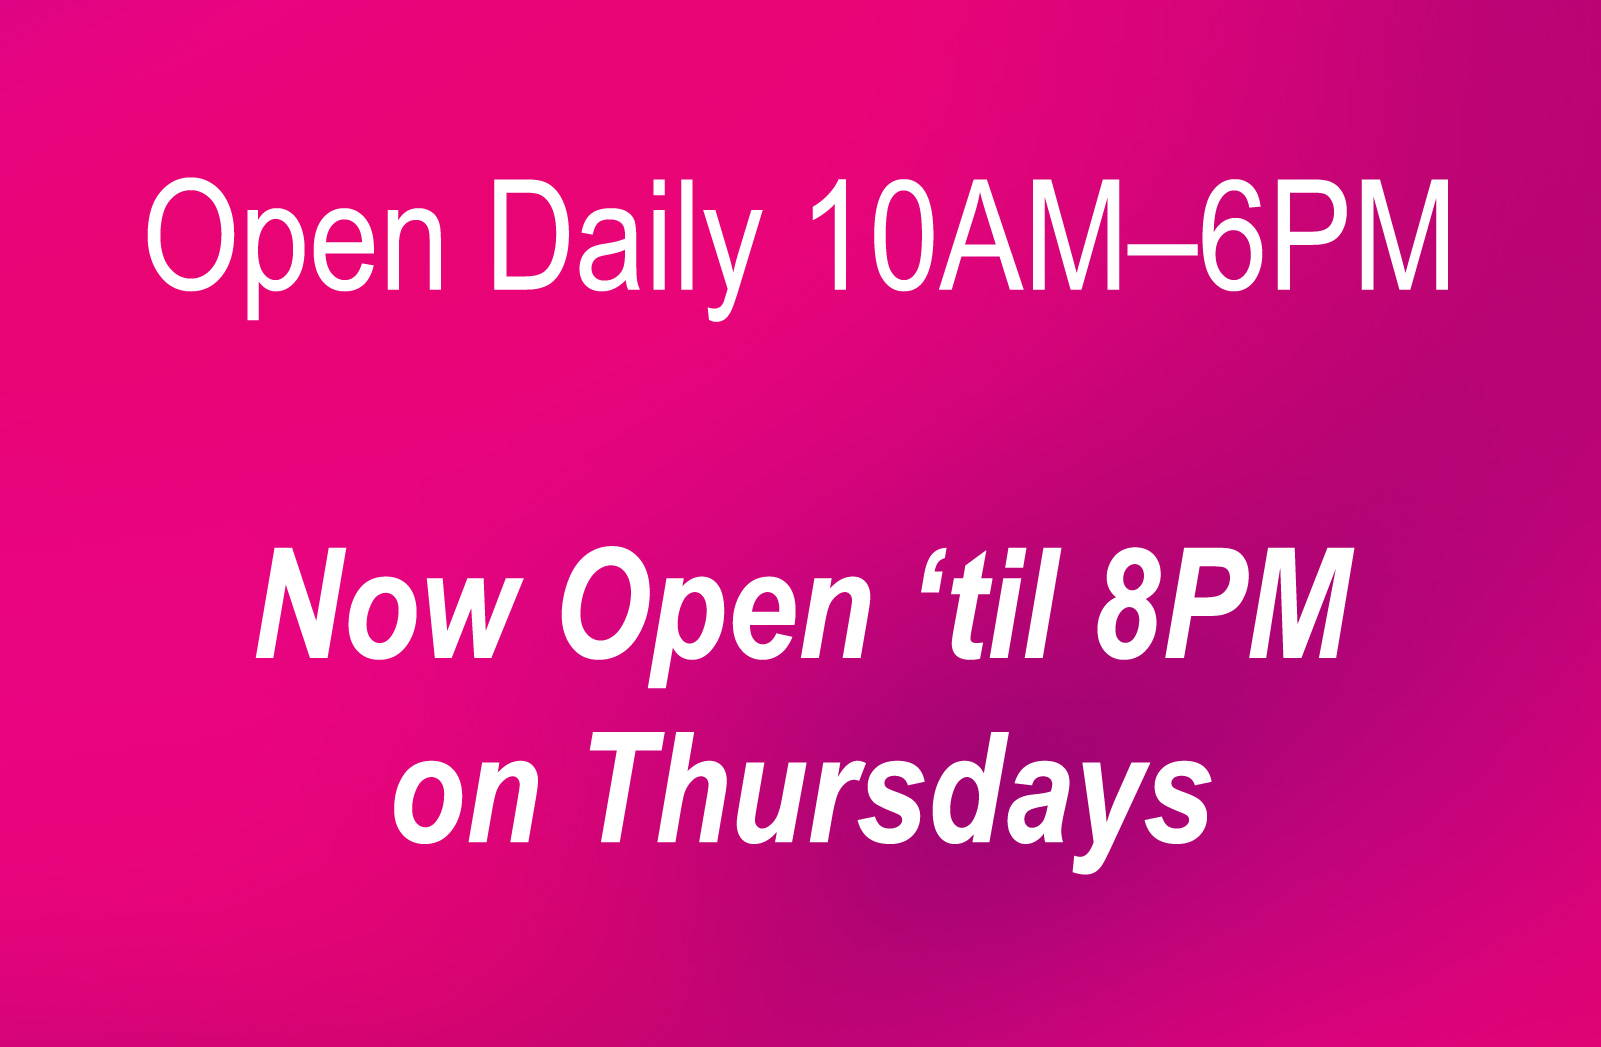 Open daily 10–6, now open until 8pm on Thursdays